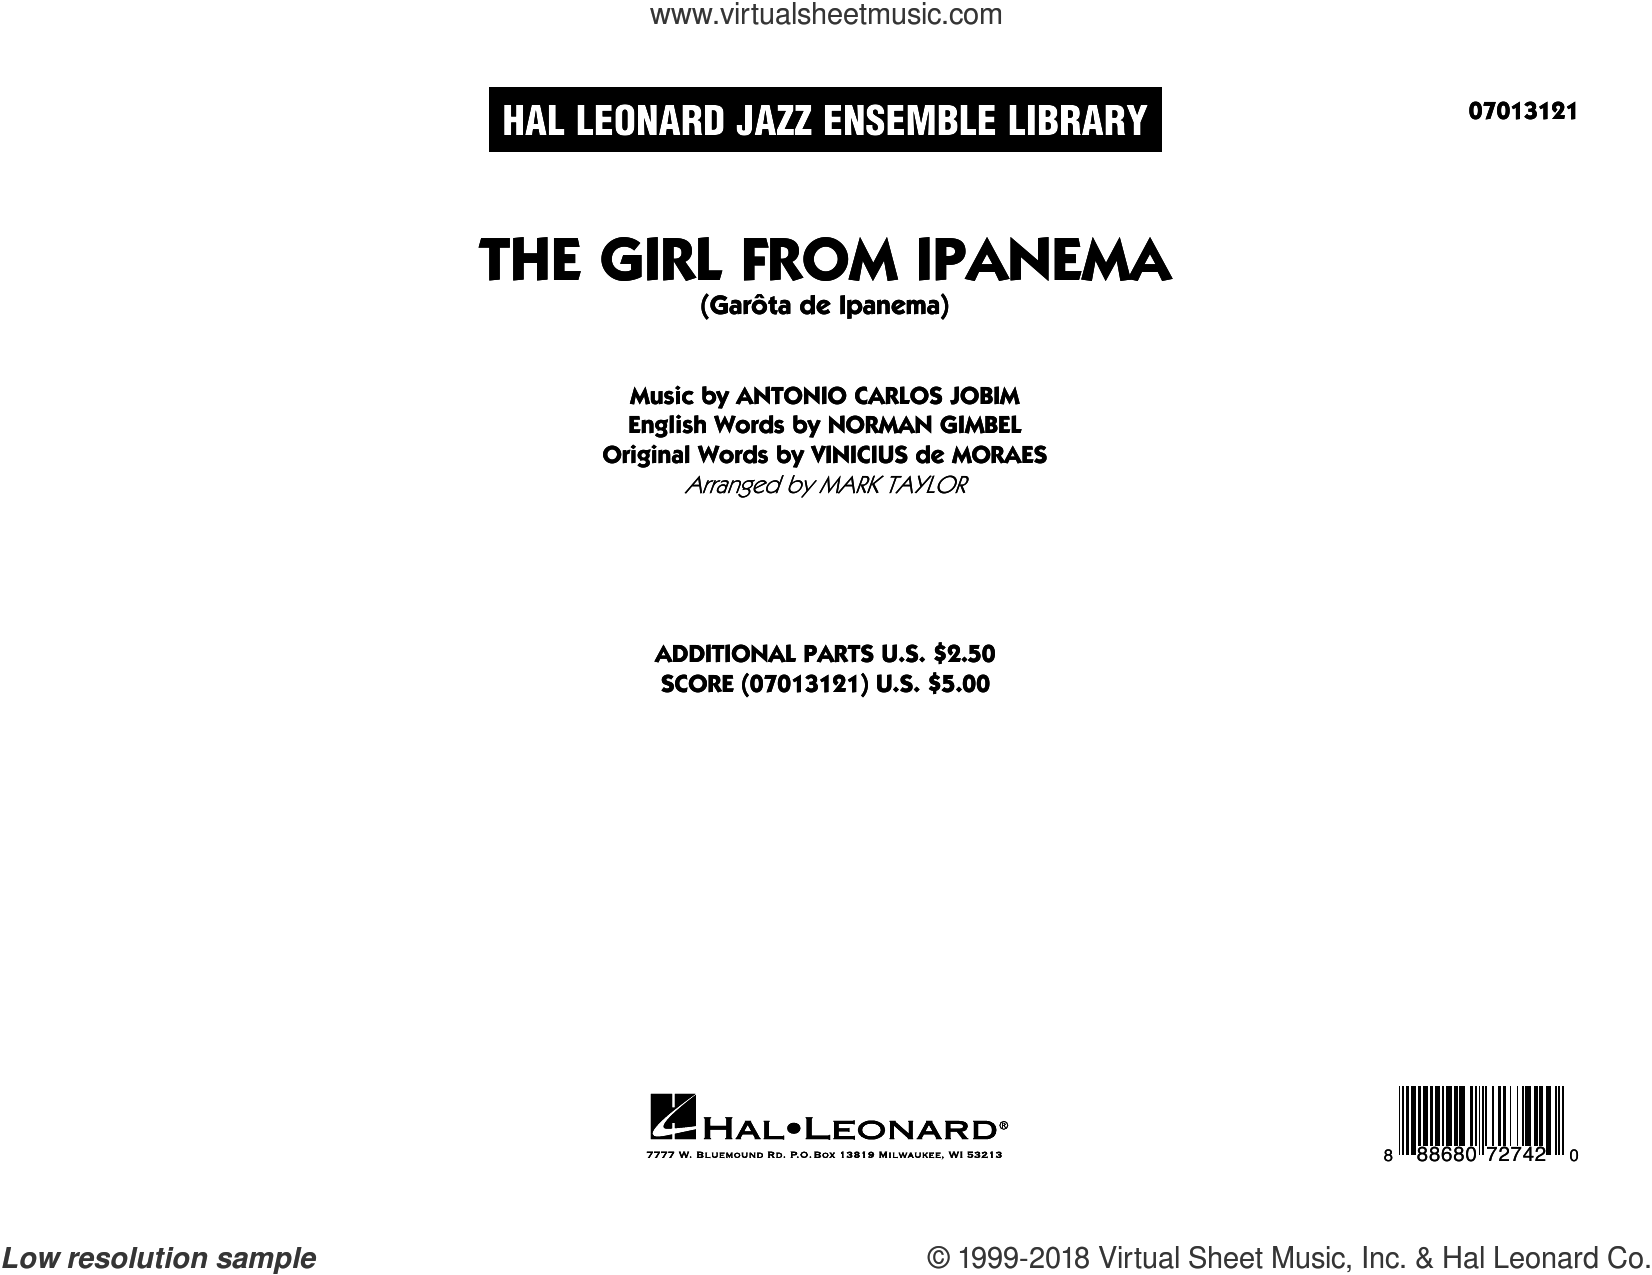 The Girl from Ipanema (COMPLETE) sheet music for jazz band by Norman Gimbel, Antonio Carlos Jobim, Mark Taylor, Stan Getz & Astrud Gilberto and Vinicius de Moraes, intermediate skill level